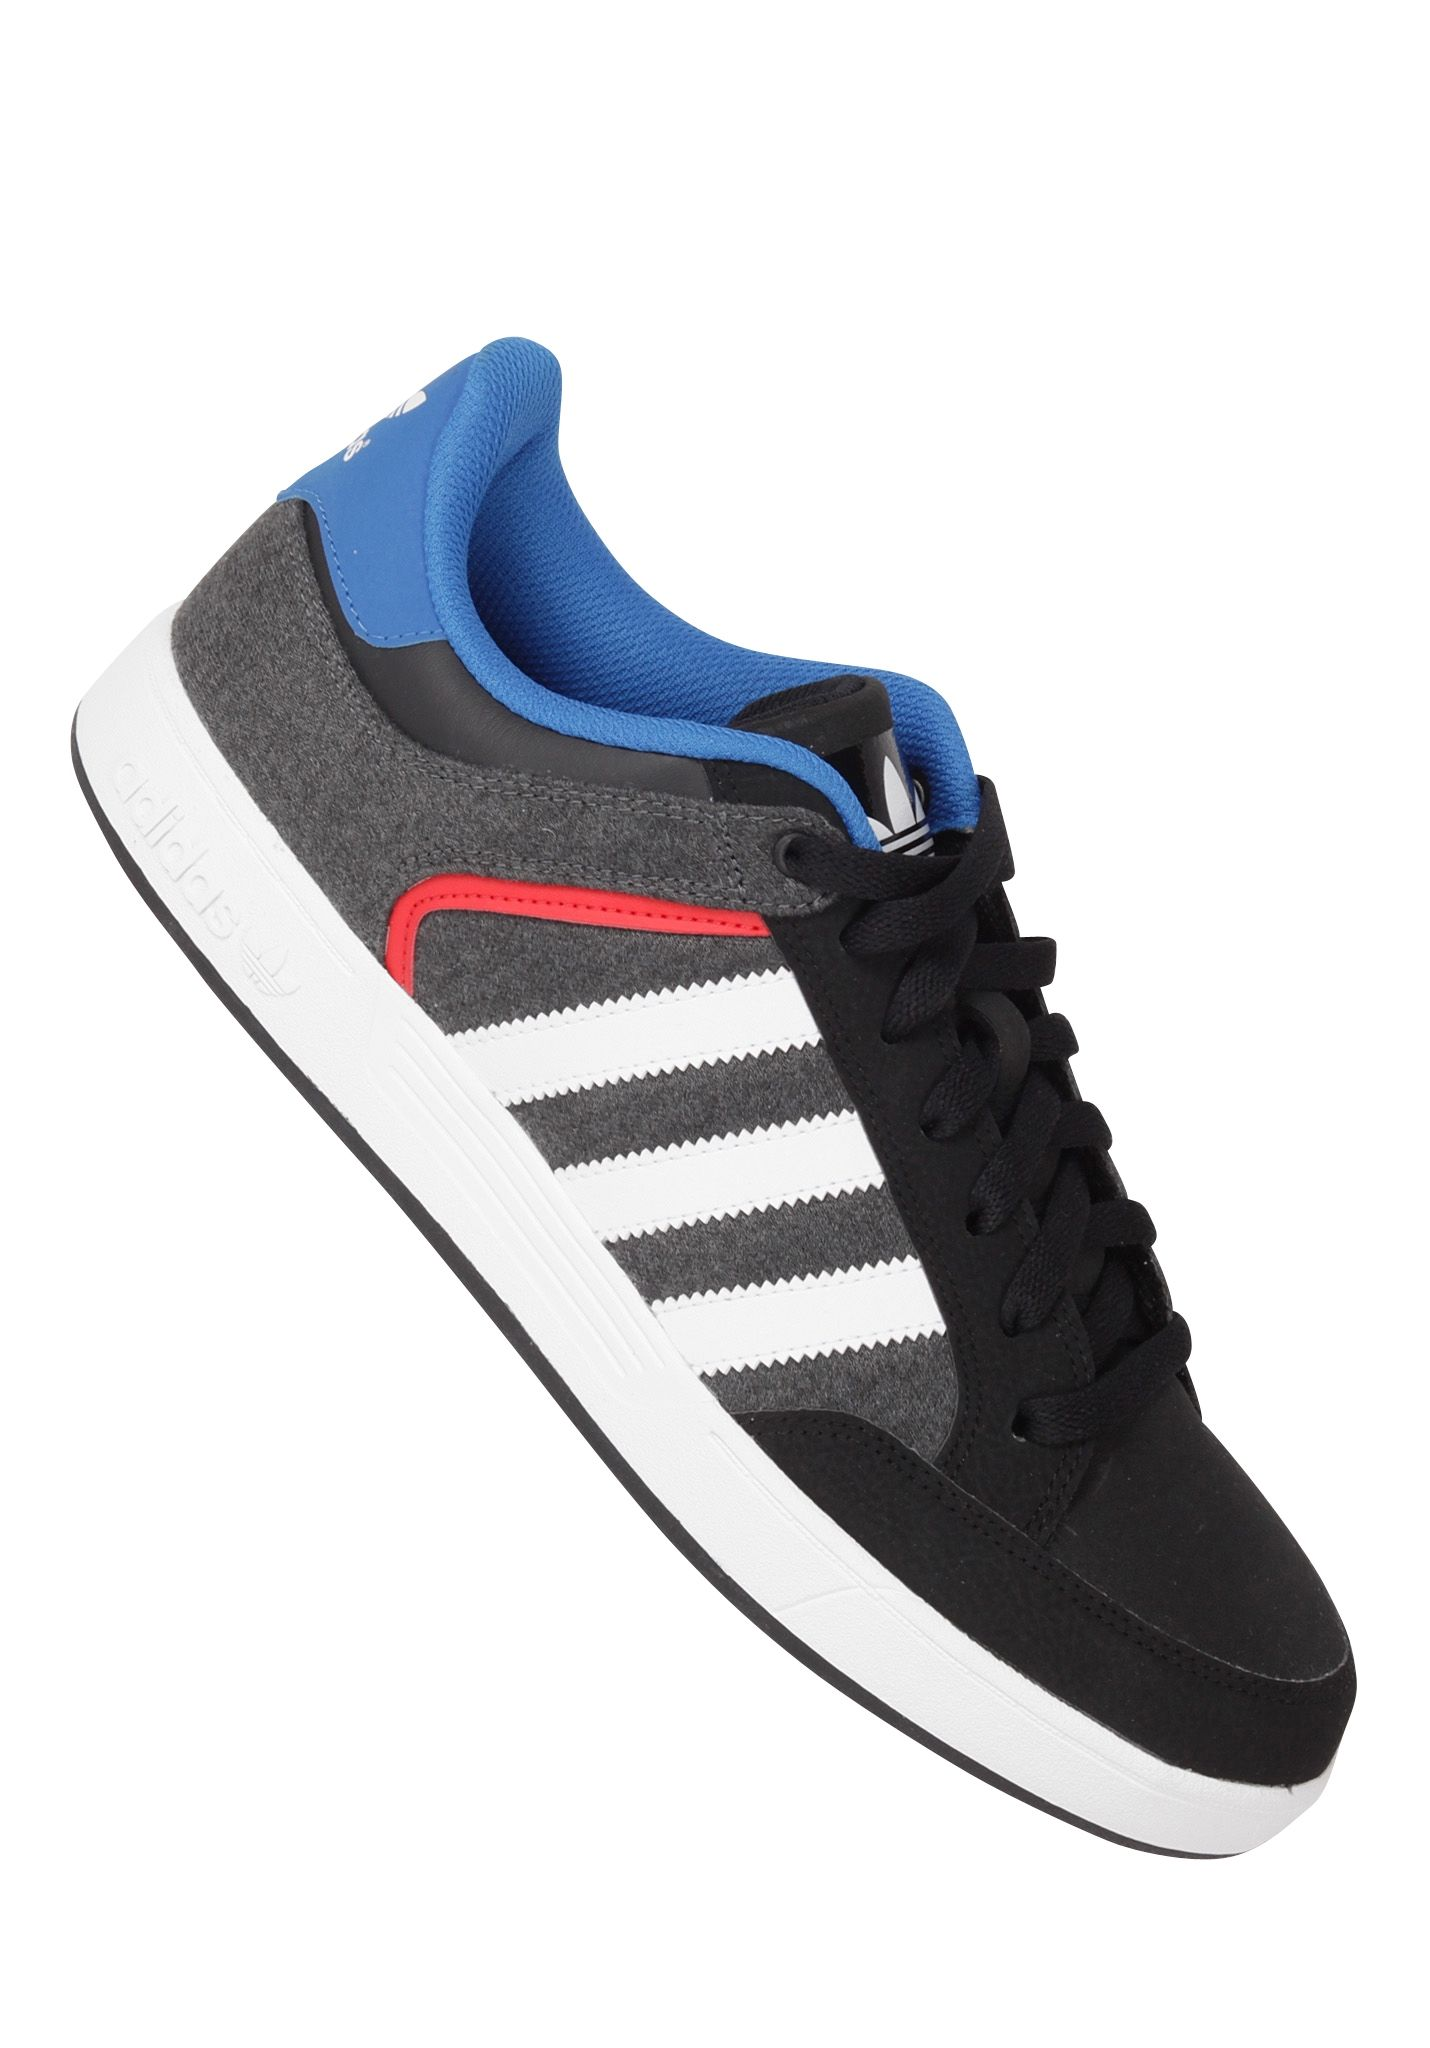 new style 97fff 07fde ADIDAS Varial Low - Sneakers for Men - Black - Planet Sports